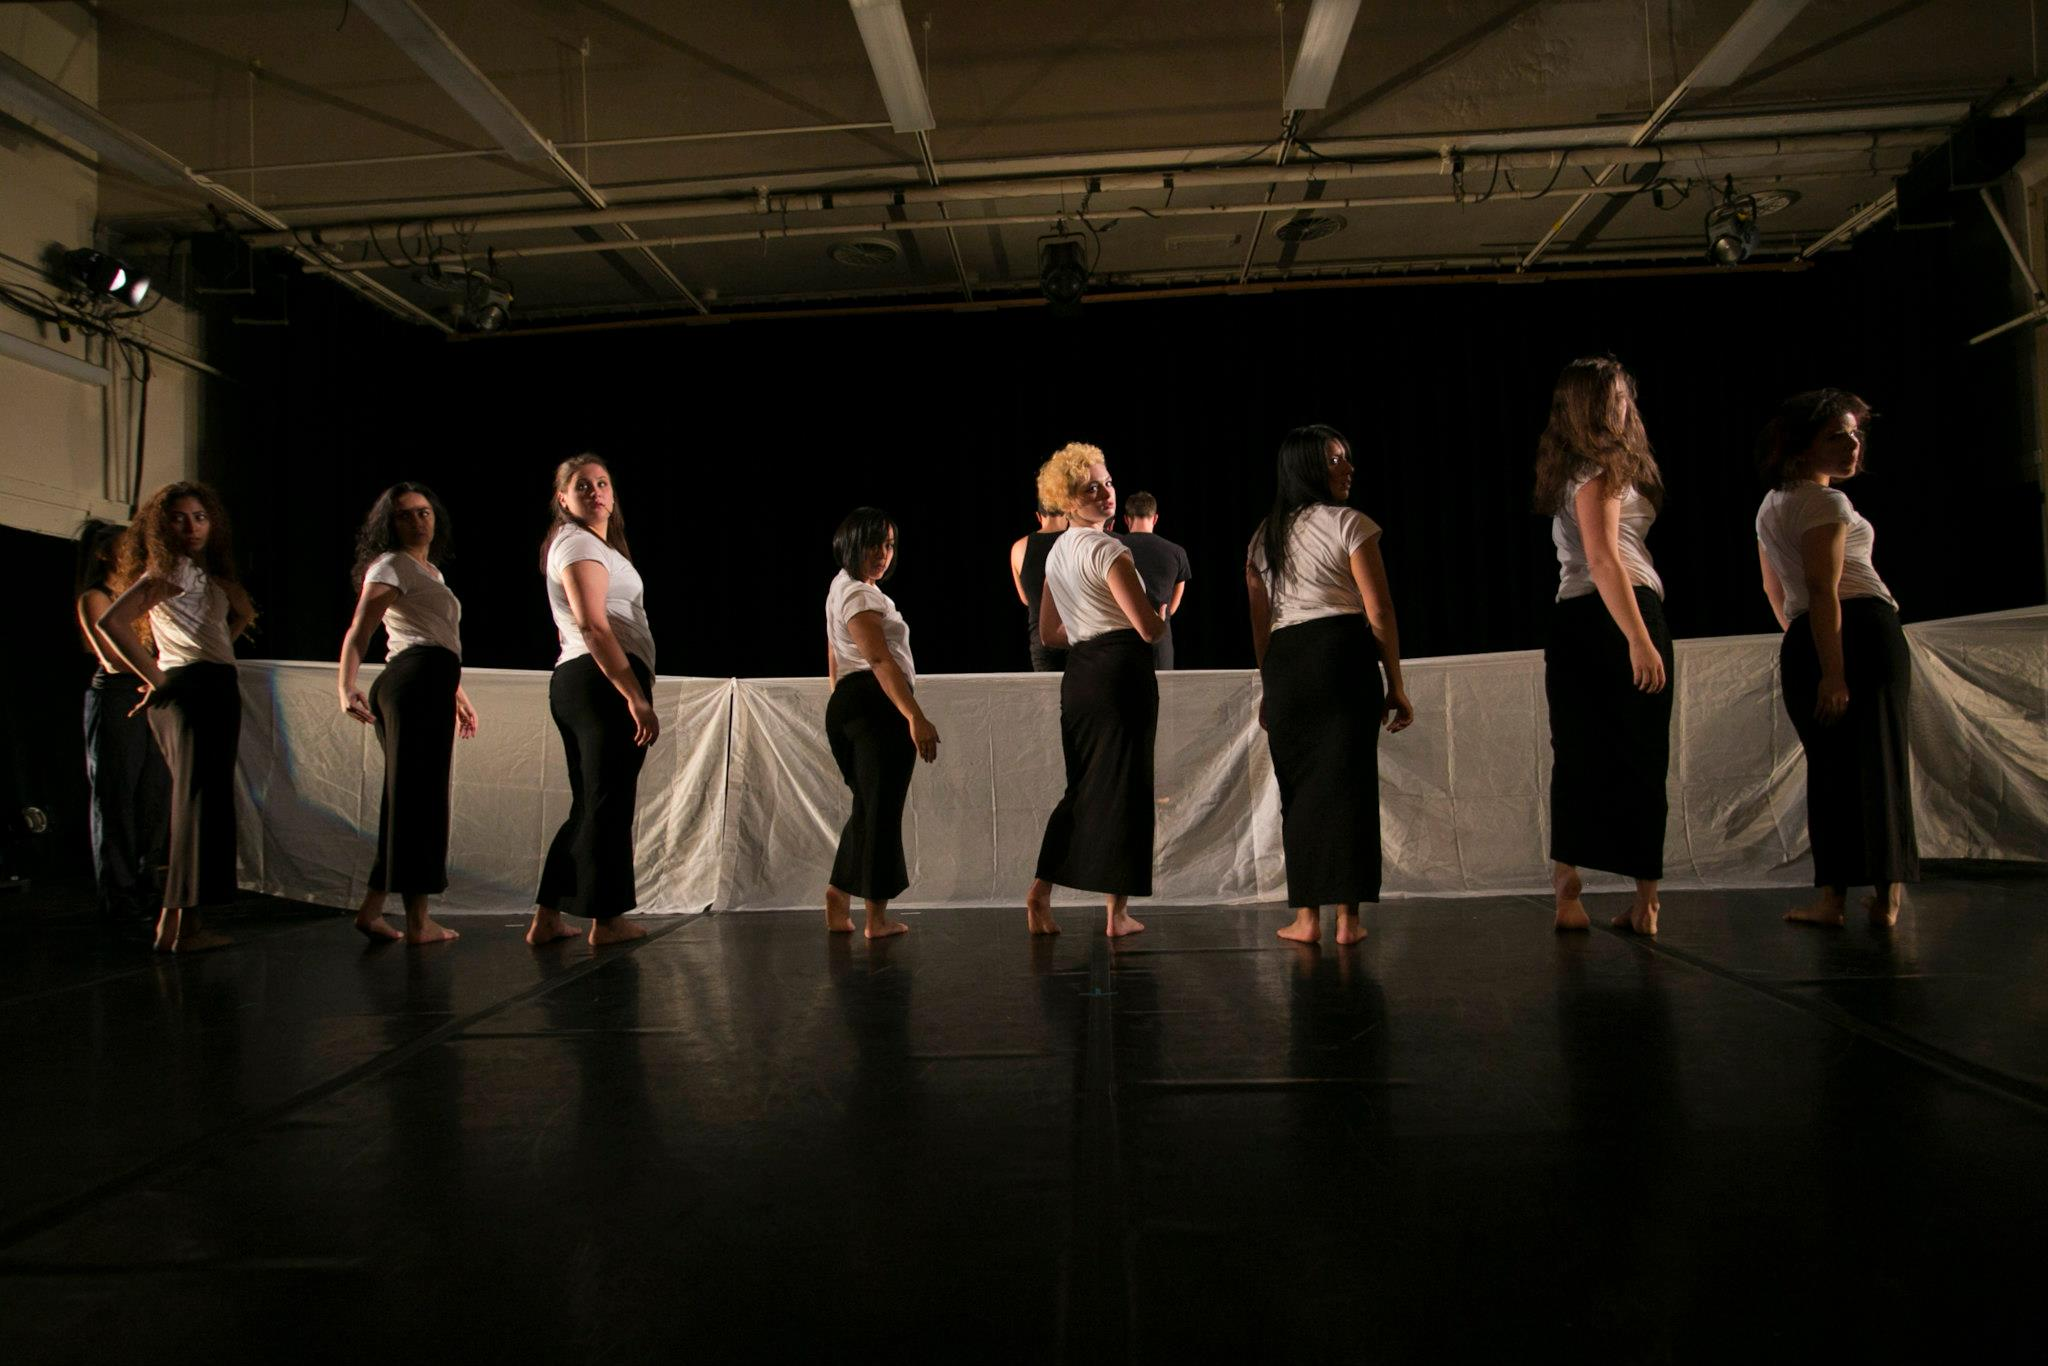 Florence Nasar, Women's Section, original choreographic work, Performance Shot  by Whitney Browne, 2012